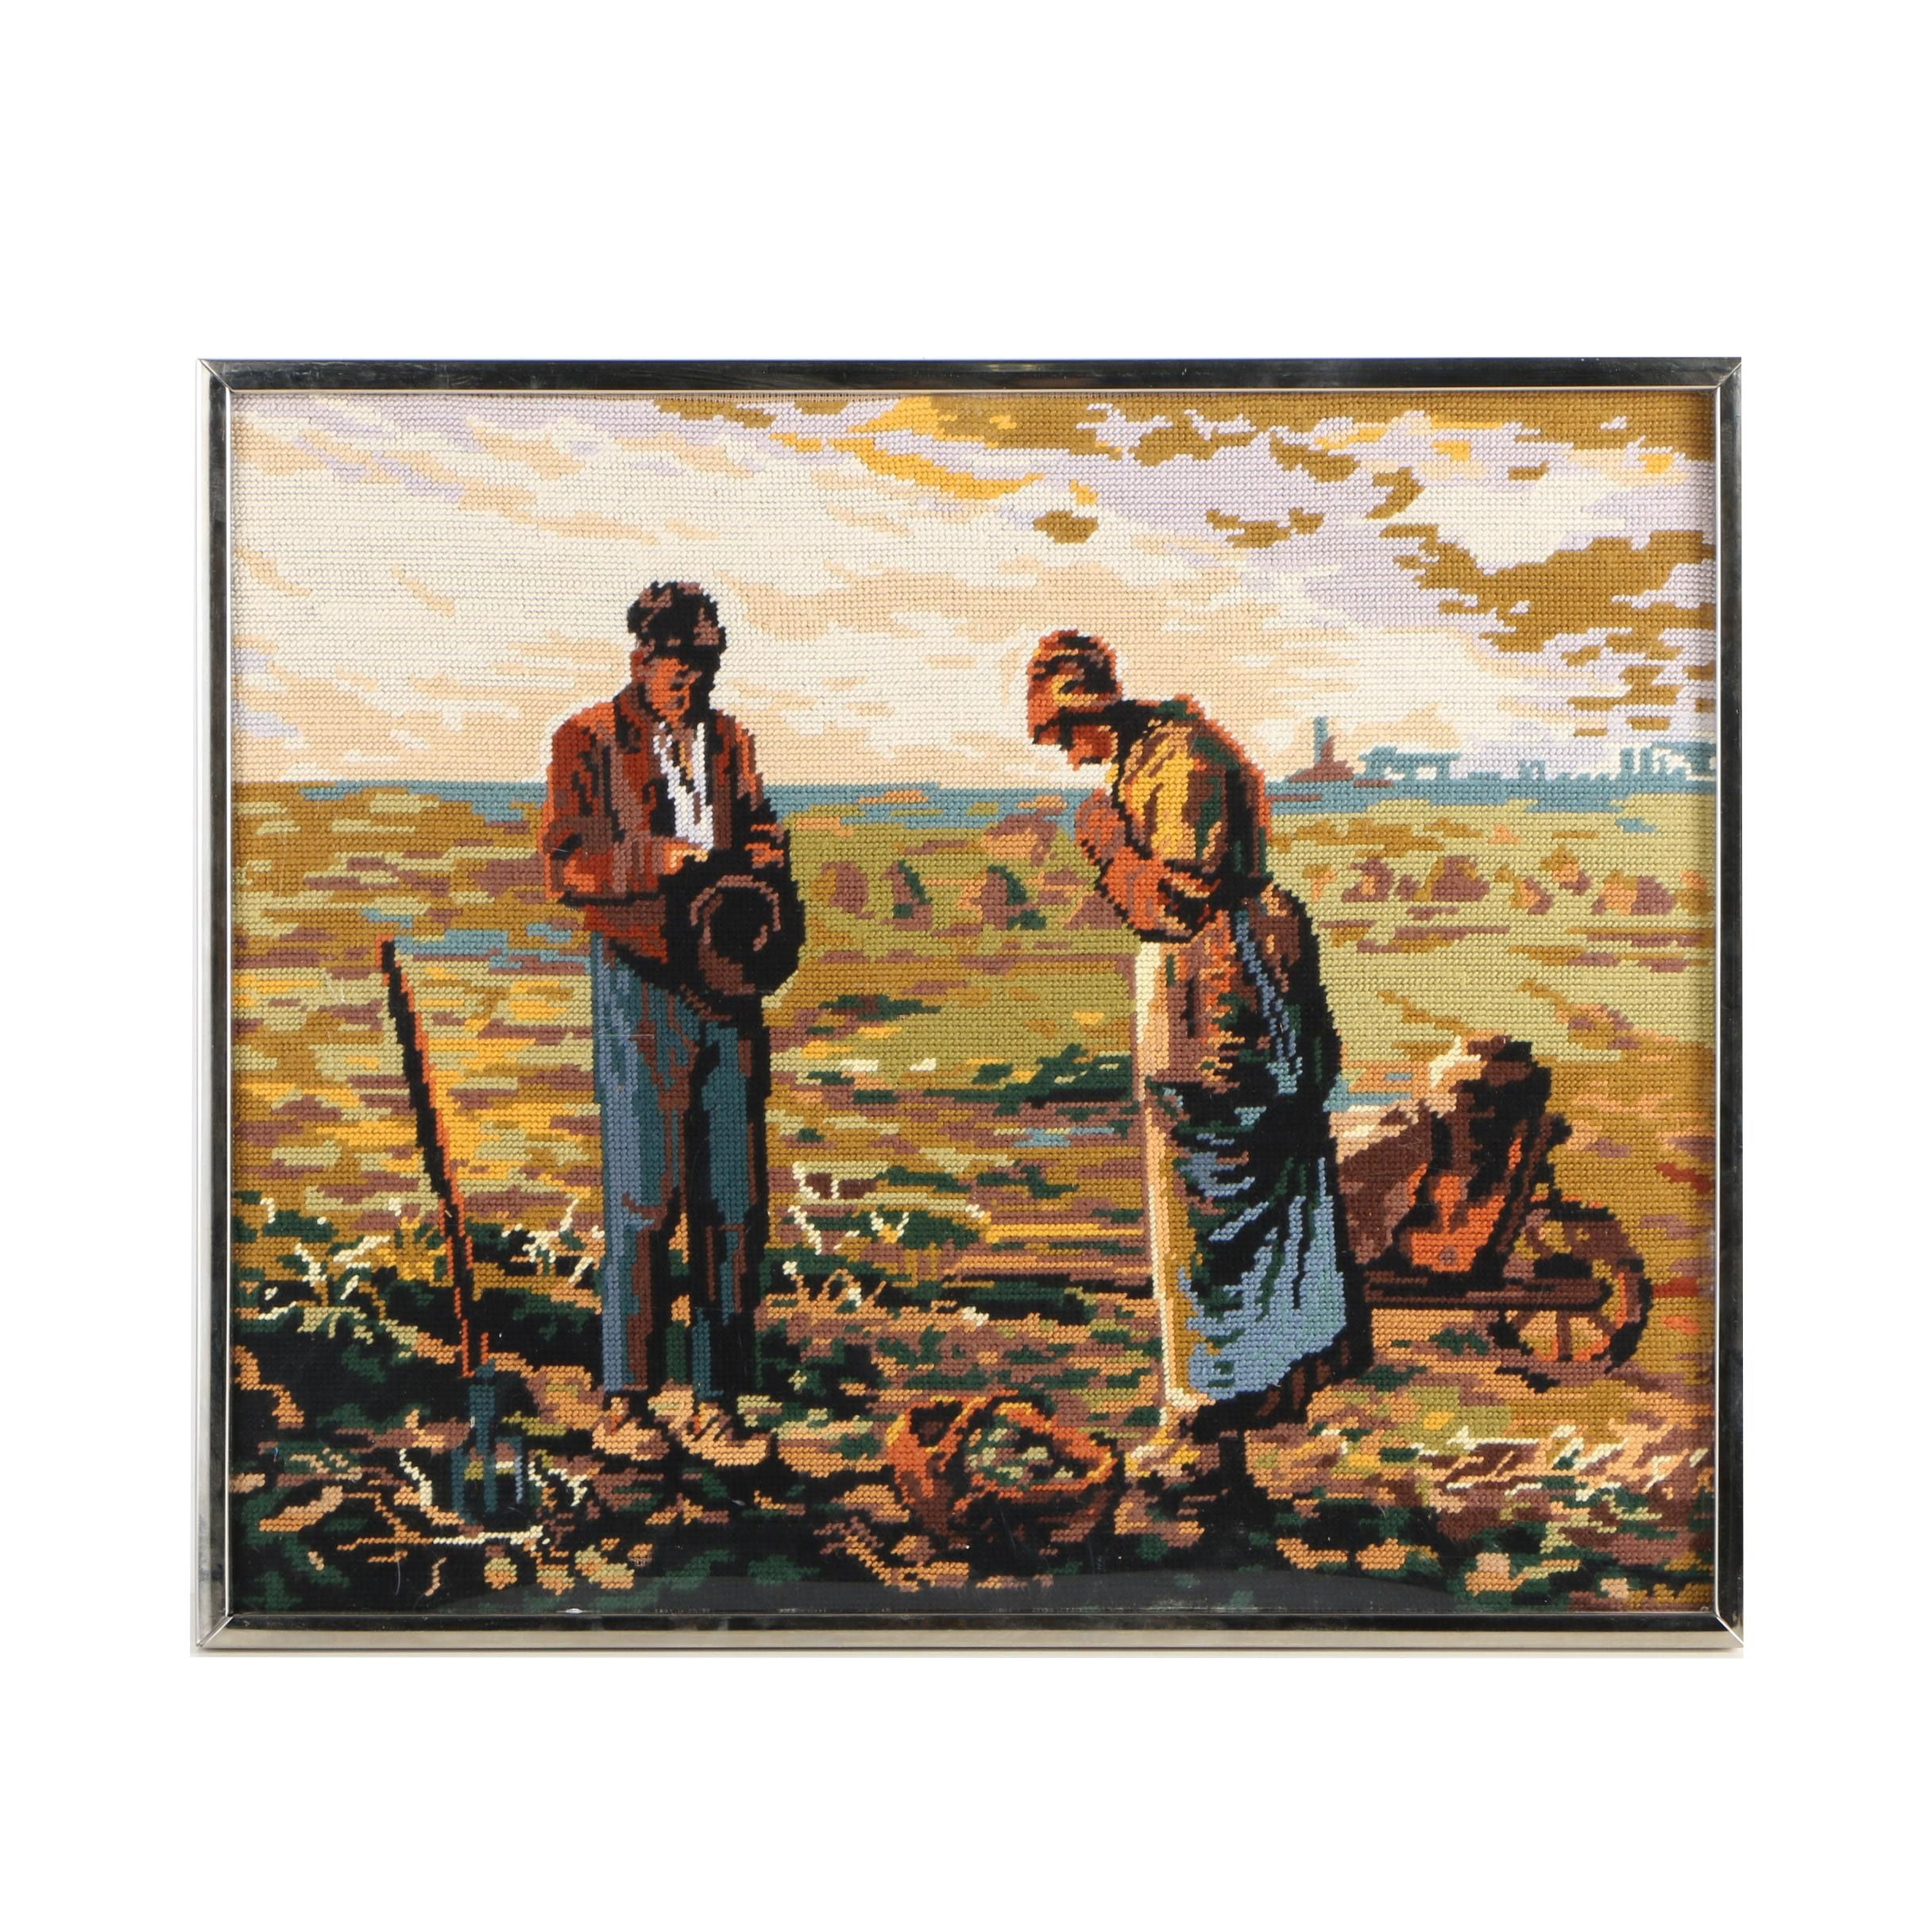 "Needlepoint After Jean-François Millet's ""The Angelus"""